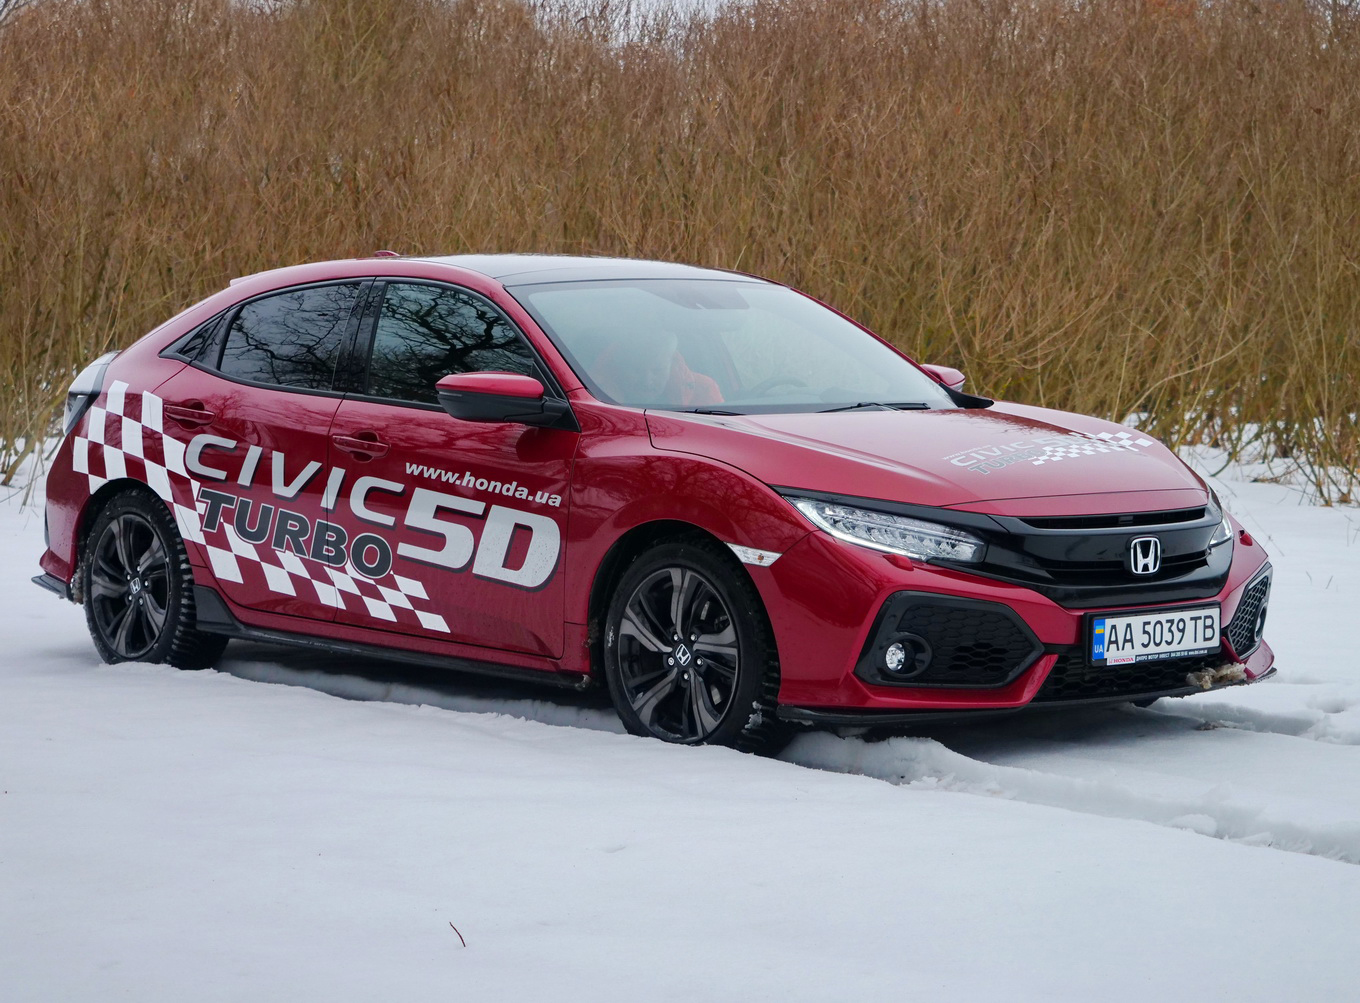 Тест-драйв Honda Civic Turbo: турбопровод